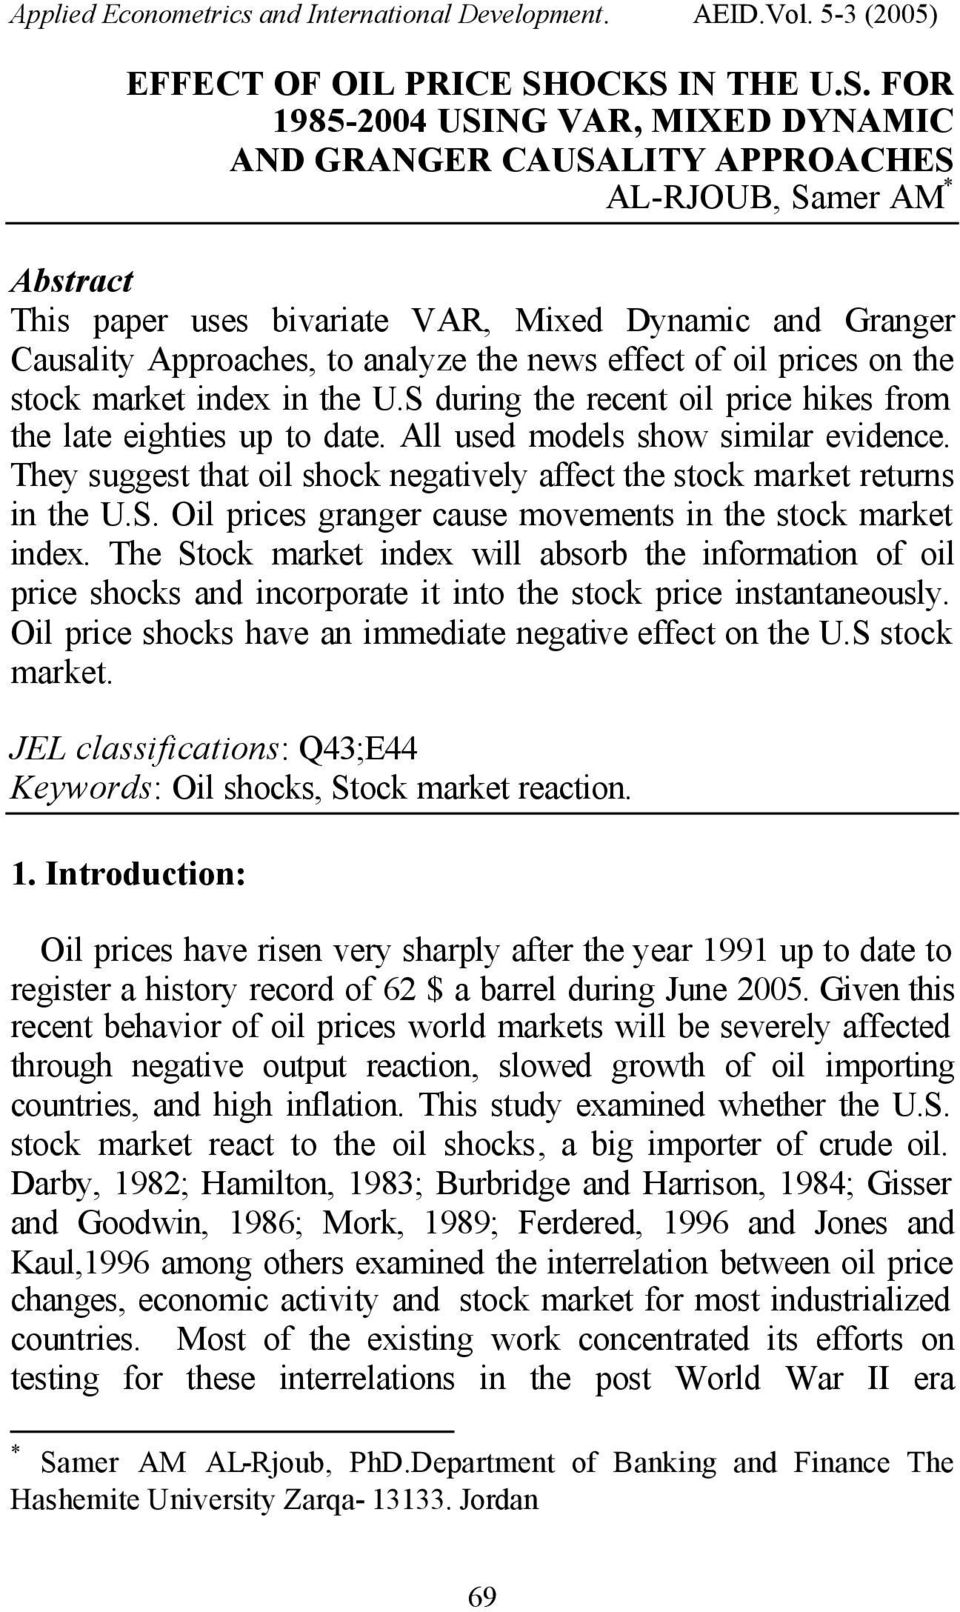 analyze he news effec of oil prices on he sock marke index in he U.S during he recen oil price hikes from he lae eighies up o dae. All used models show similar evidence.